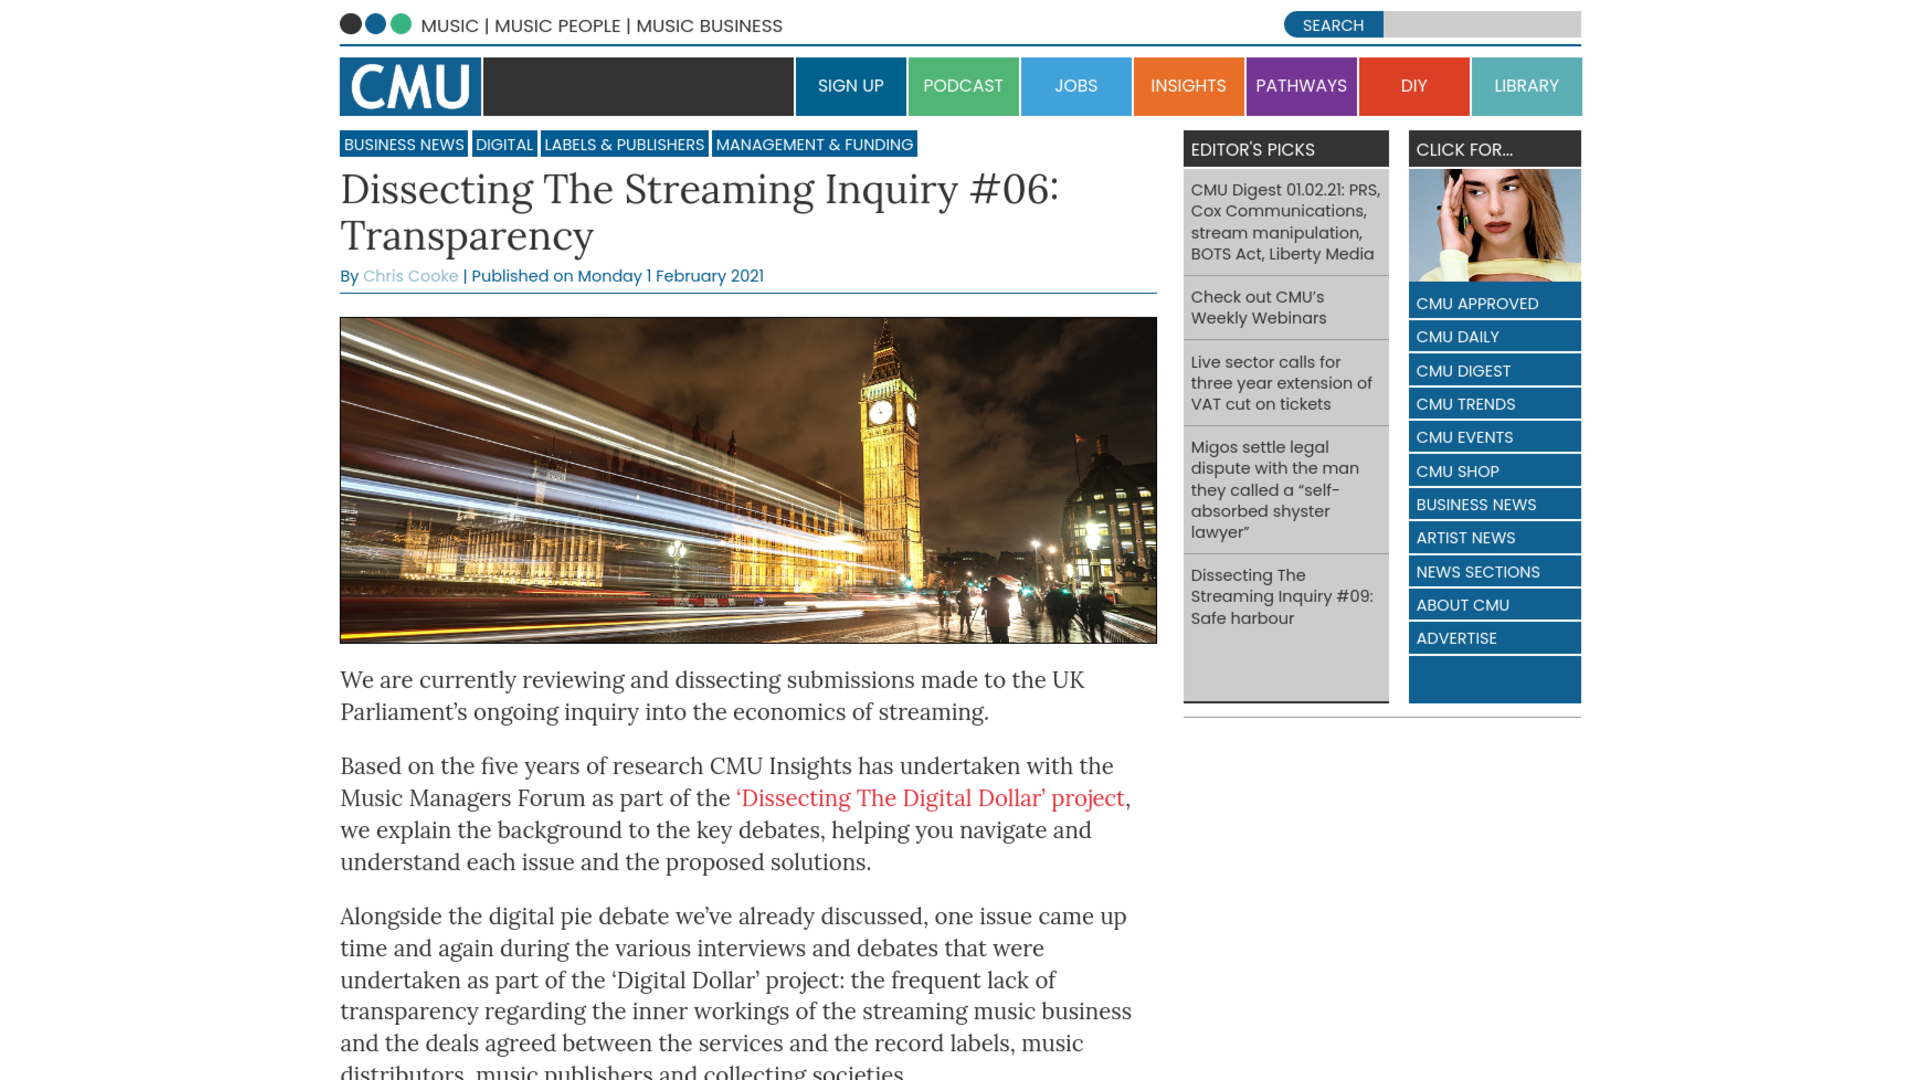 Fairness Rocks News Dissecting The Streaming Inquiry #06: Transparency